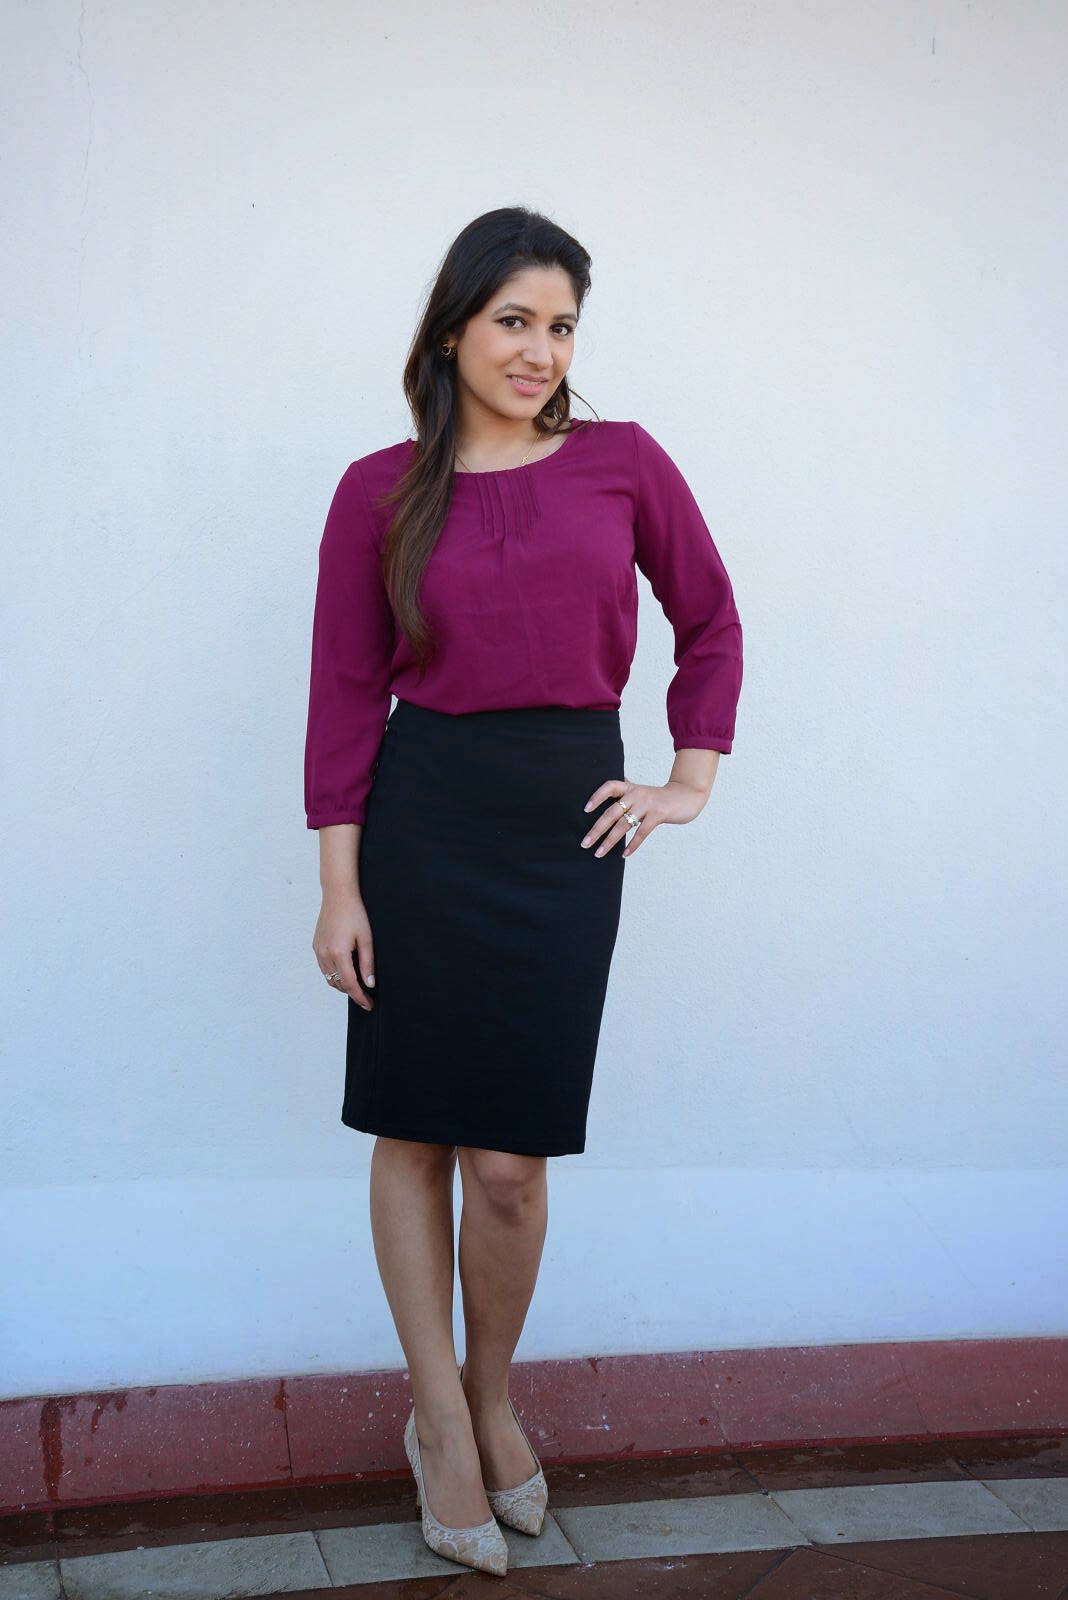 Actress Prabhjeet Kaur Latest Cute Hot Purple Top And Black Mini Skirt Dress Spicy Thighs Show Photos Gallery